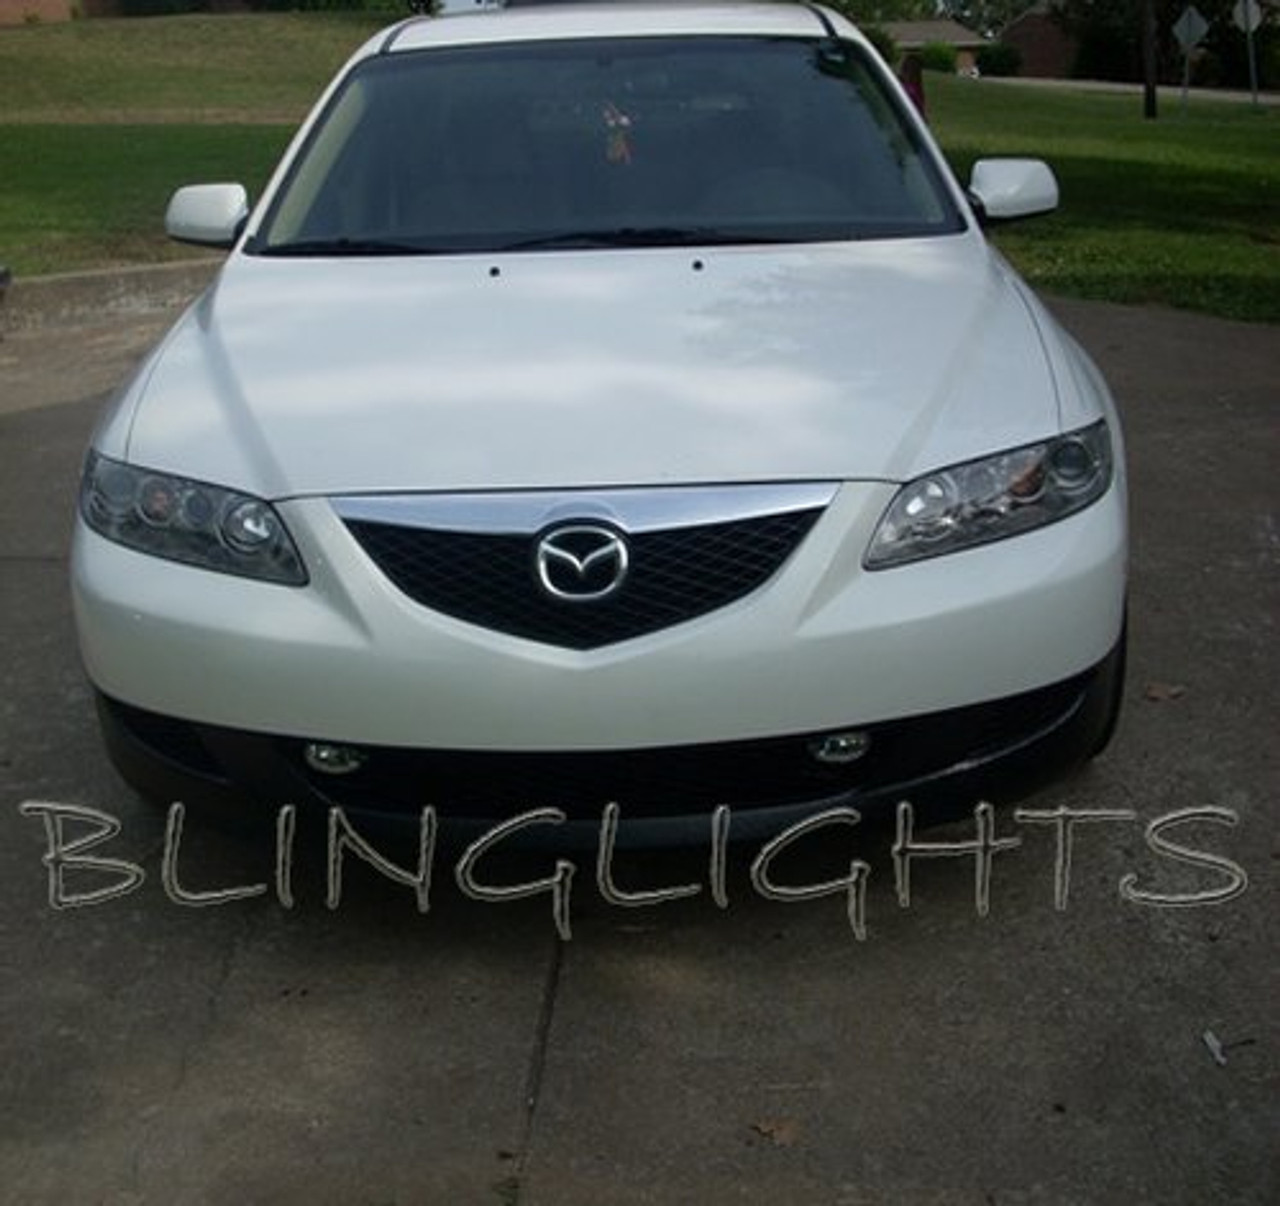 2003 2004 2005 2006 2007 2008 Mazda6 Xenon Grille Fog Lamps Driving Lights Foglamps Foglights Kit